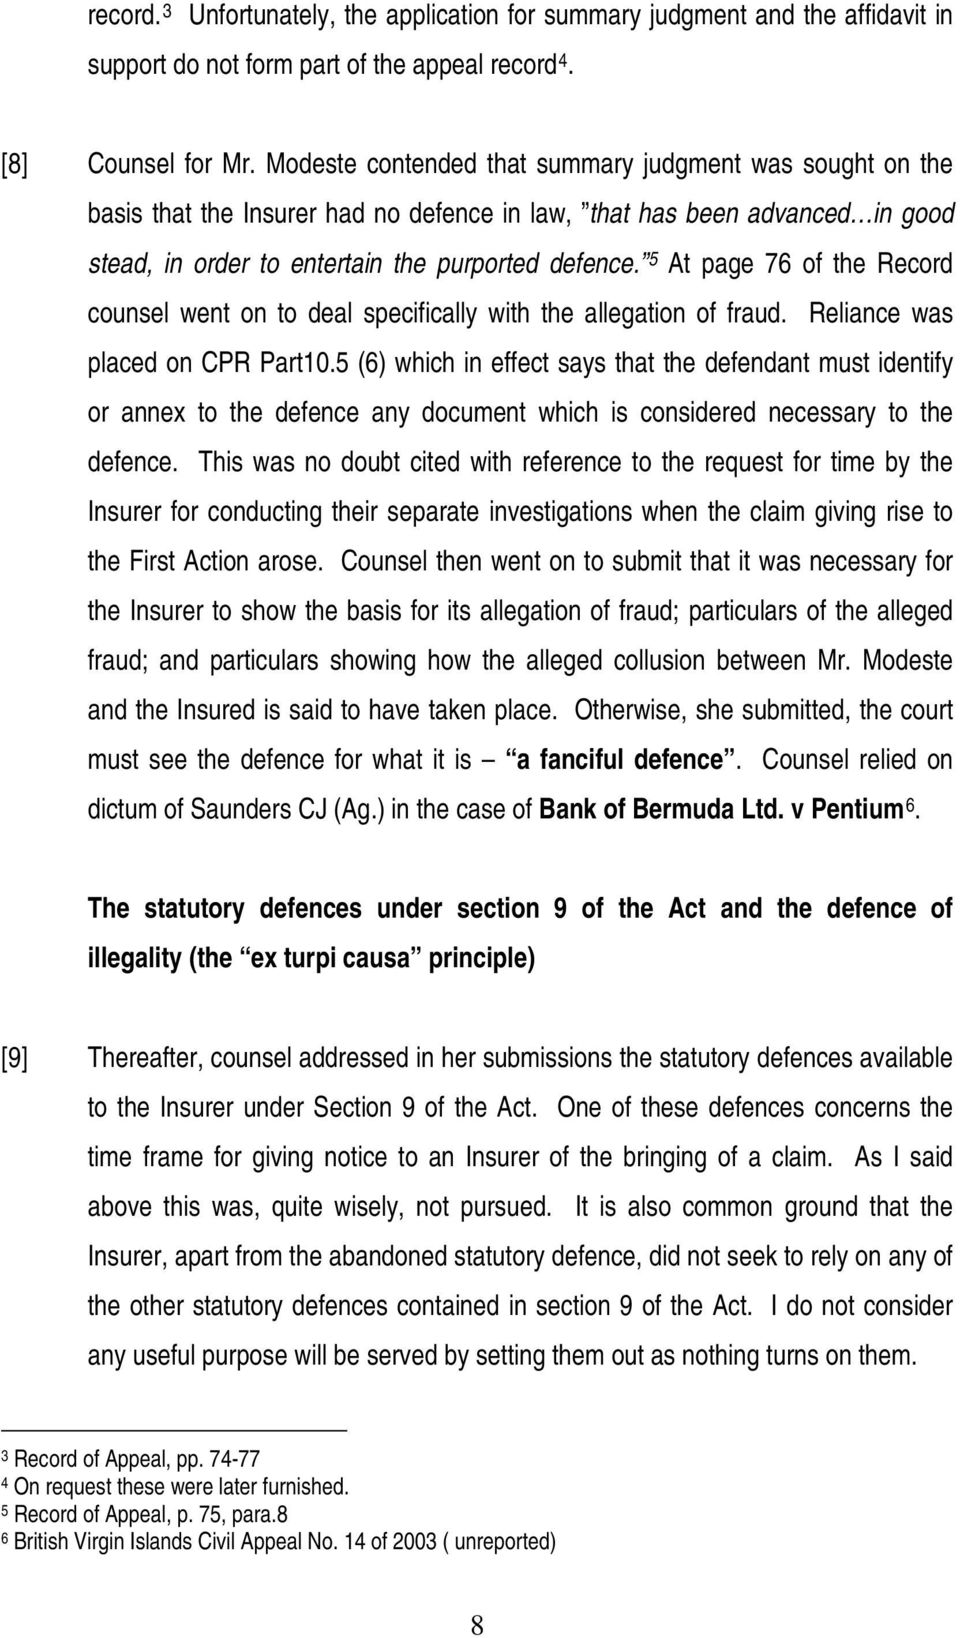 5 At page 76 of the Record counsel went on to deal specifically with the allegation of fraud. Reliance was placed on CPR Part10.